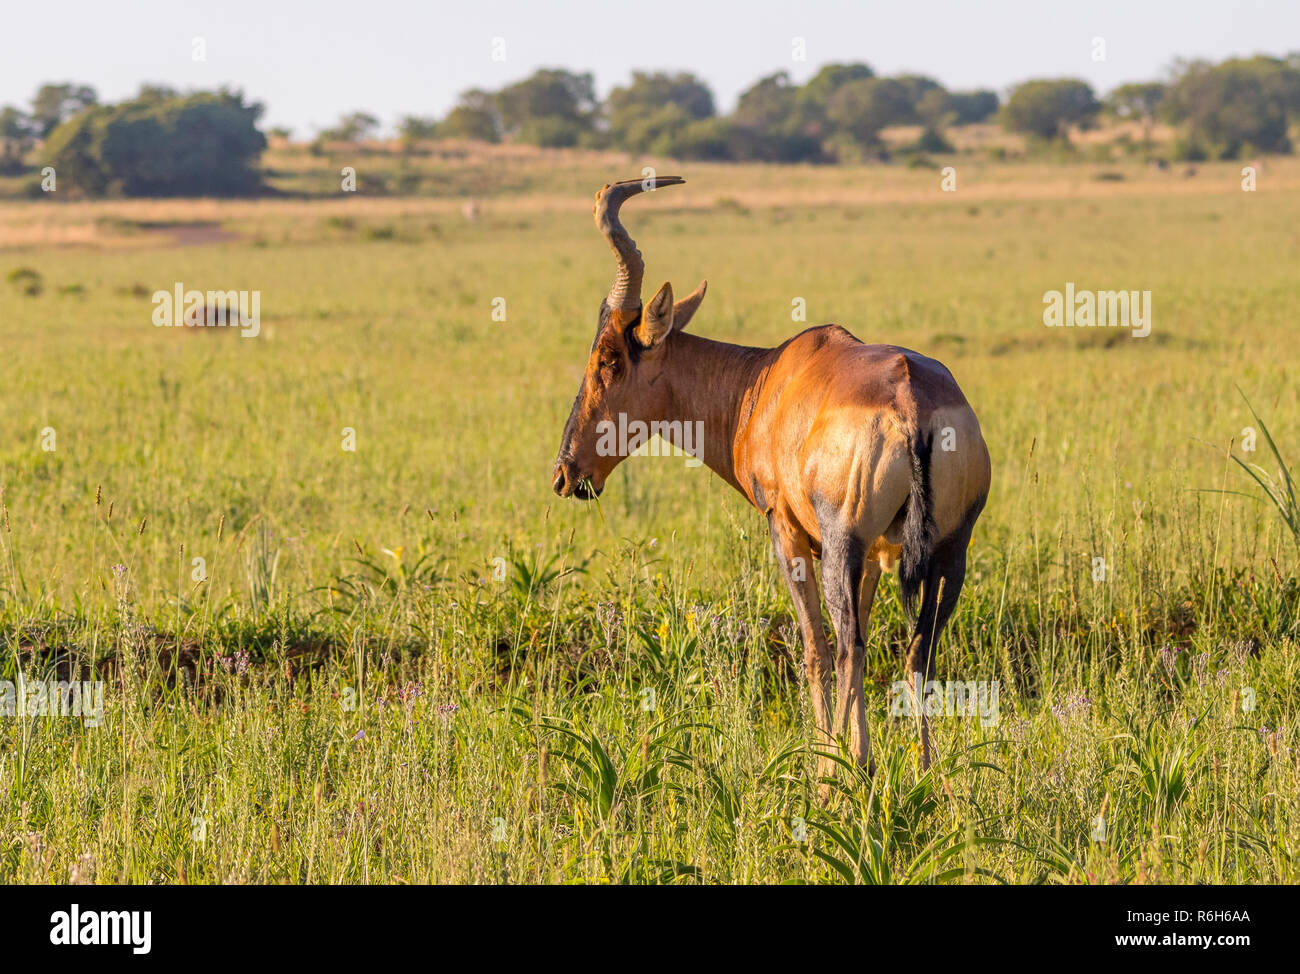 A red hartebeest grazes in the southern African wilderness image with copy space in landscape format - Stock Image